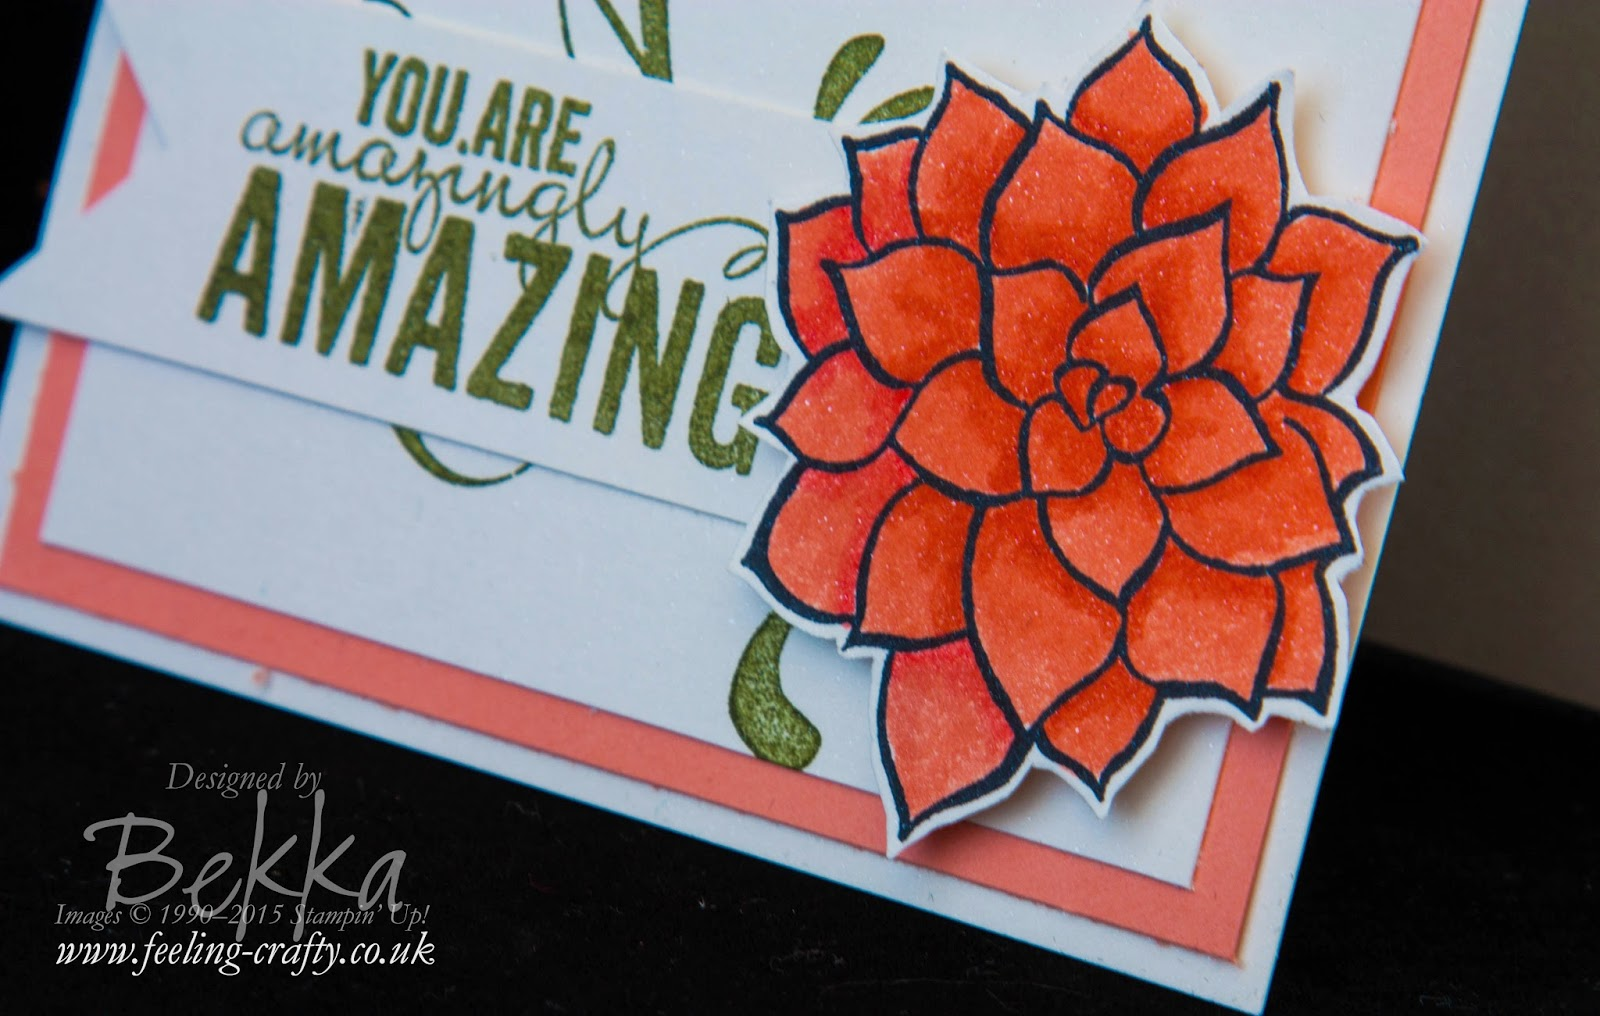 Colouring with Stampin' Write Markers with a video tutorial by Stampin' Up! UK Independent Demonstrator Bekka Prideaux